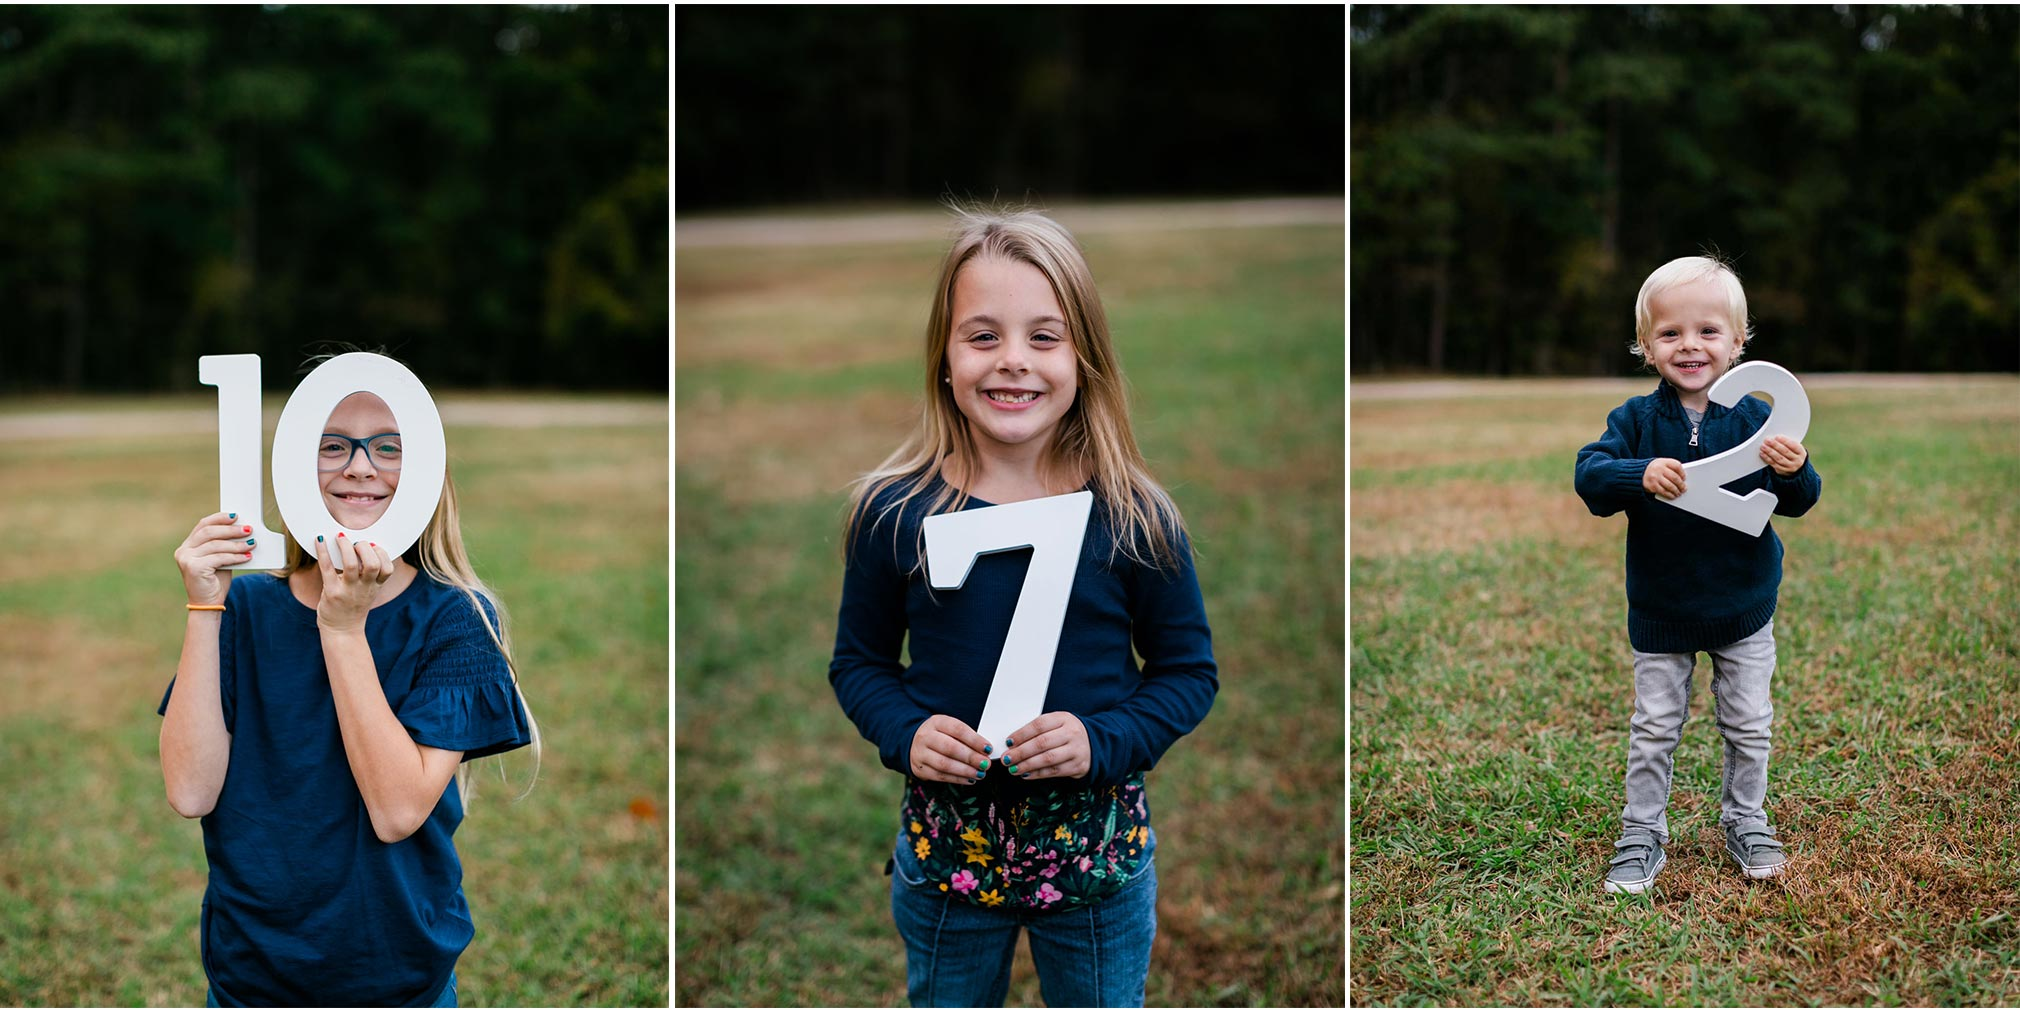 Cute photo of siblings holding up their ages | Raleigh Family Photography | By G. Lin Photography